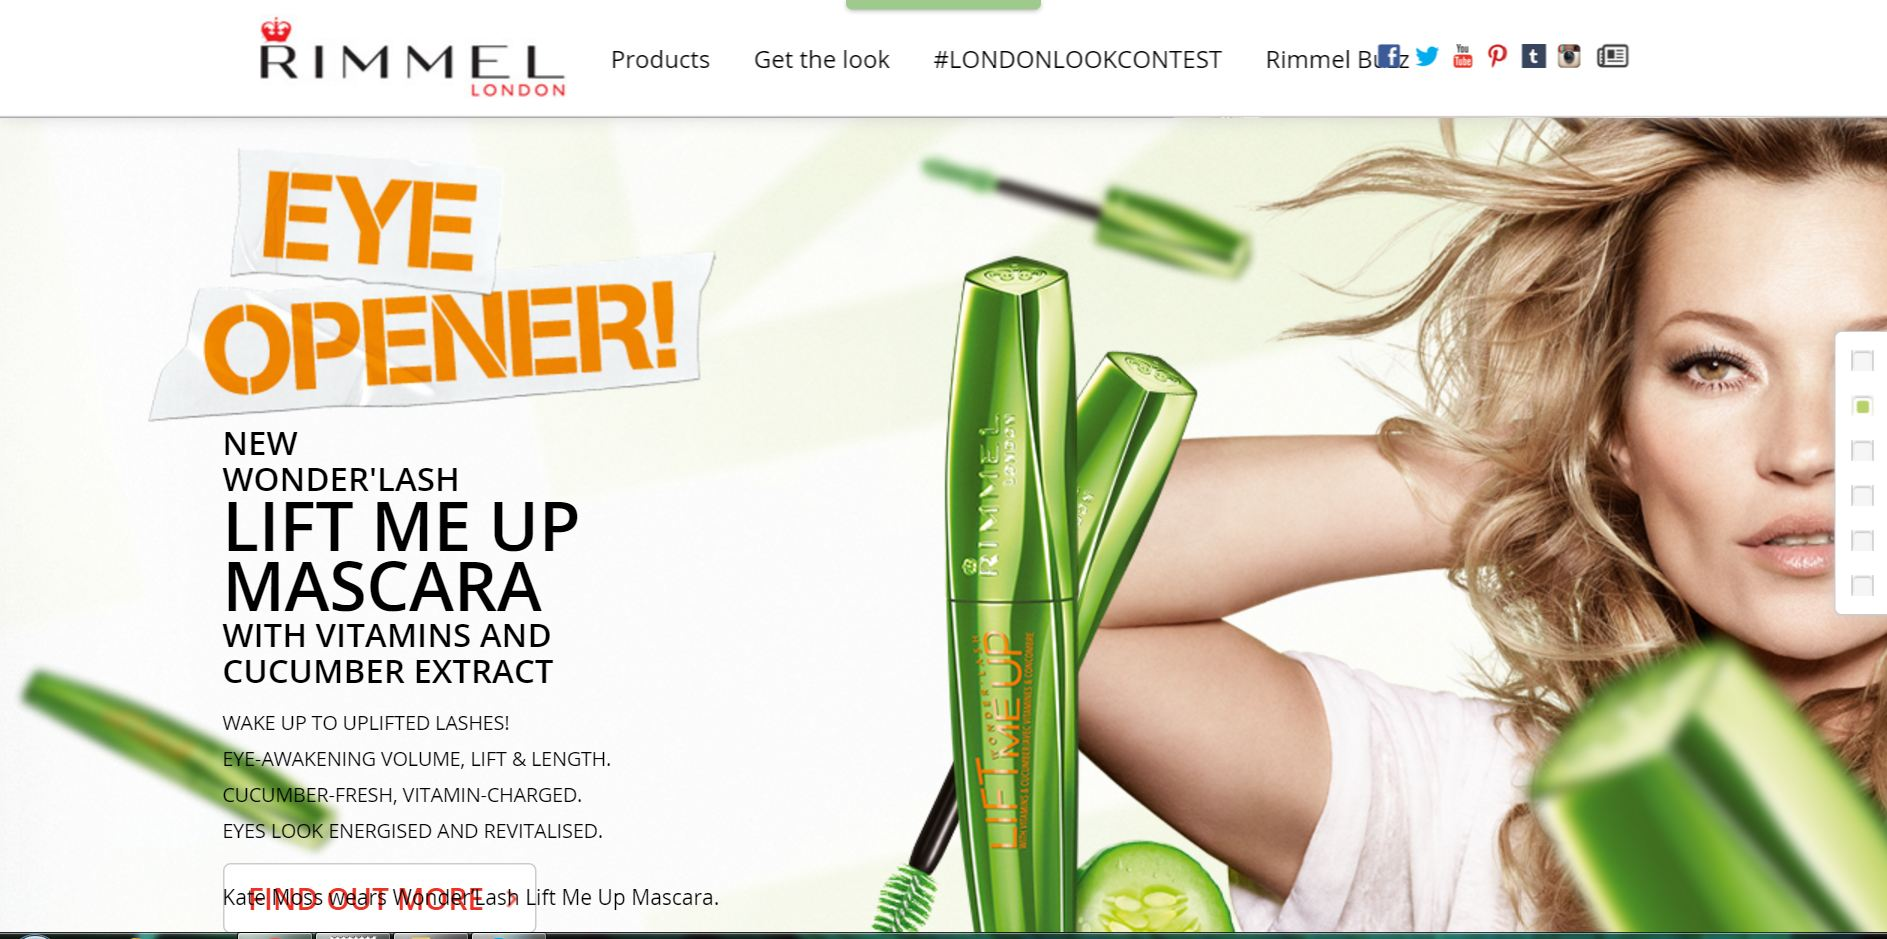 site rimmel london parallax scrolling